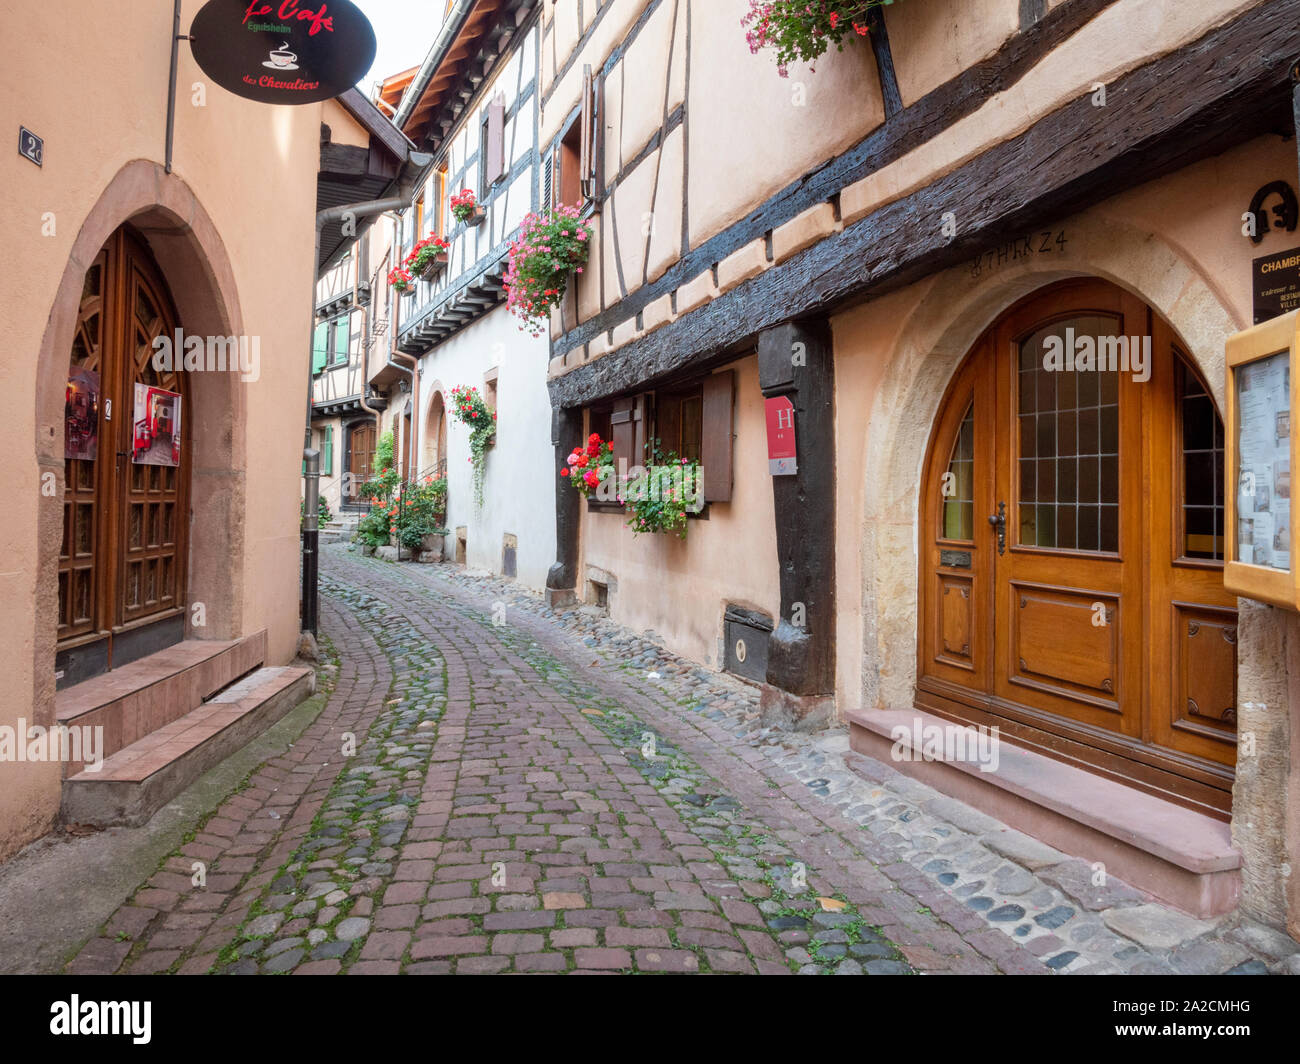 Half timbered buildings in the centre of Eguisheim Alsace France a pretty medieval town in the heart of the Alsace wine region and popular travel dest Stock Photo